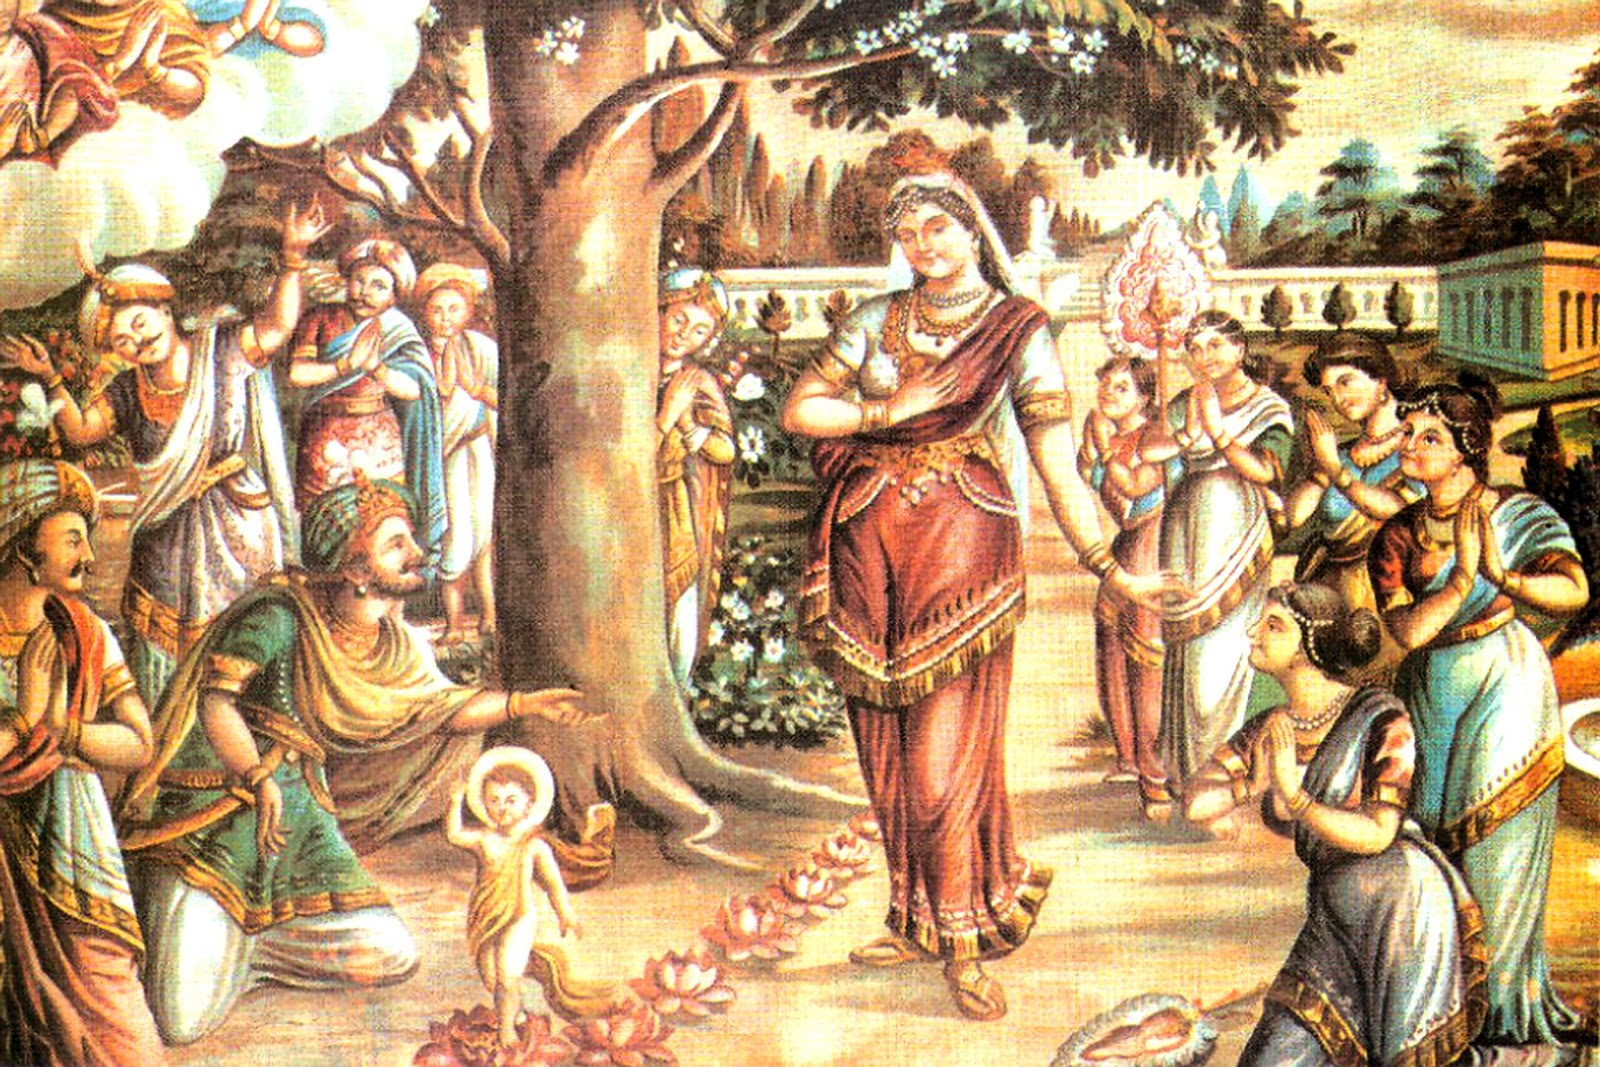 a biography of siddhartha Gautama buddha was a spiritual leader on whose teachings buddhism was founded this biography of gautama buddha provides detailed information about his childhood, life, achievements, works & timeline this day.